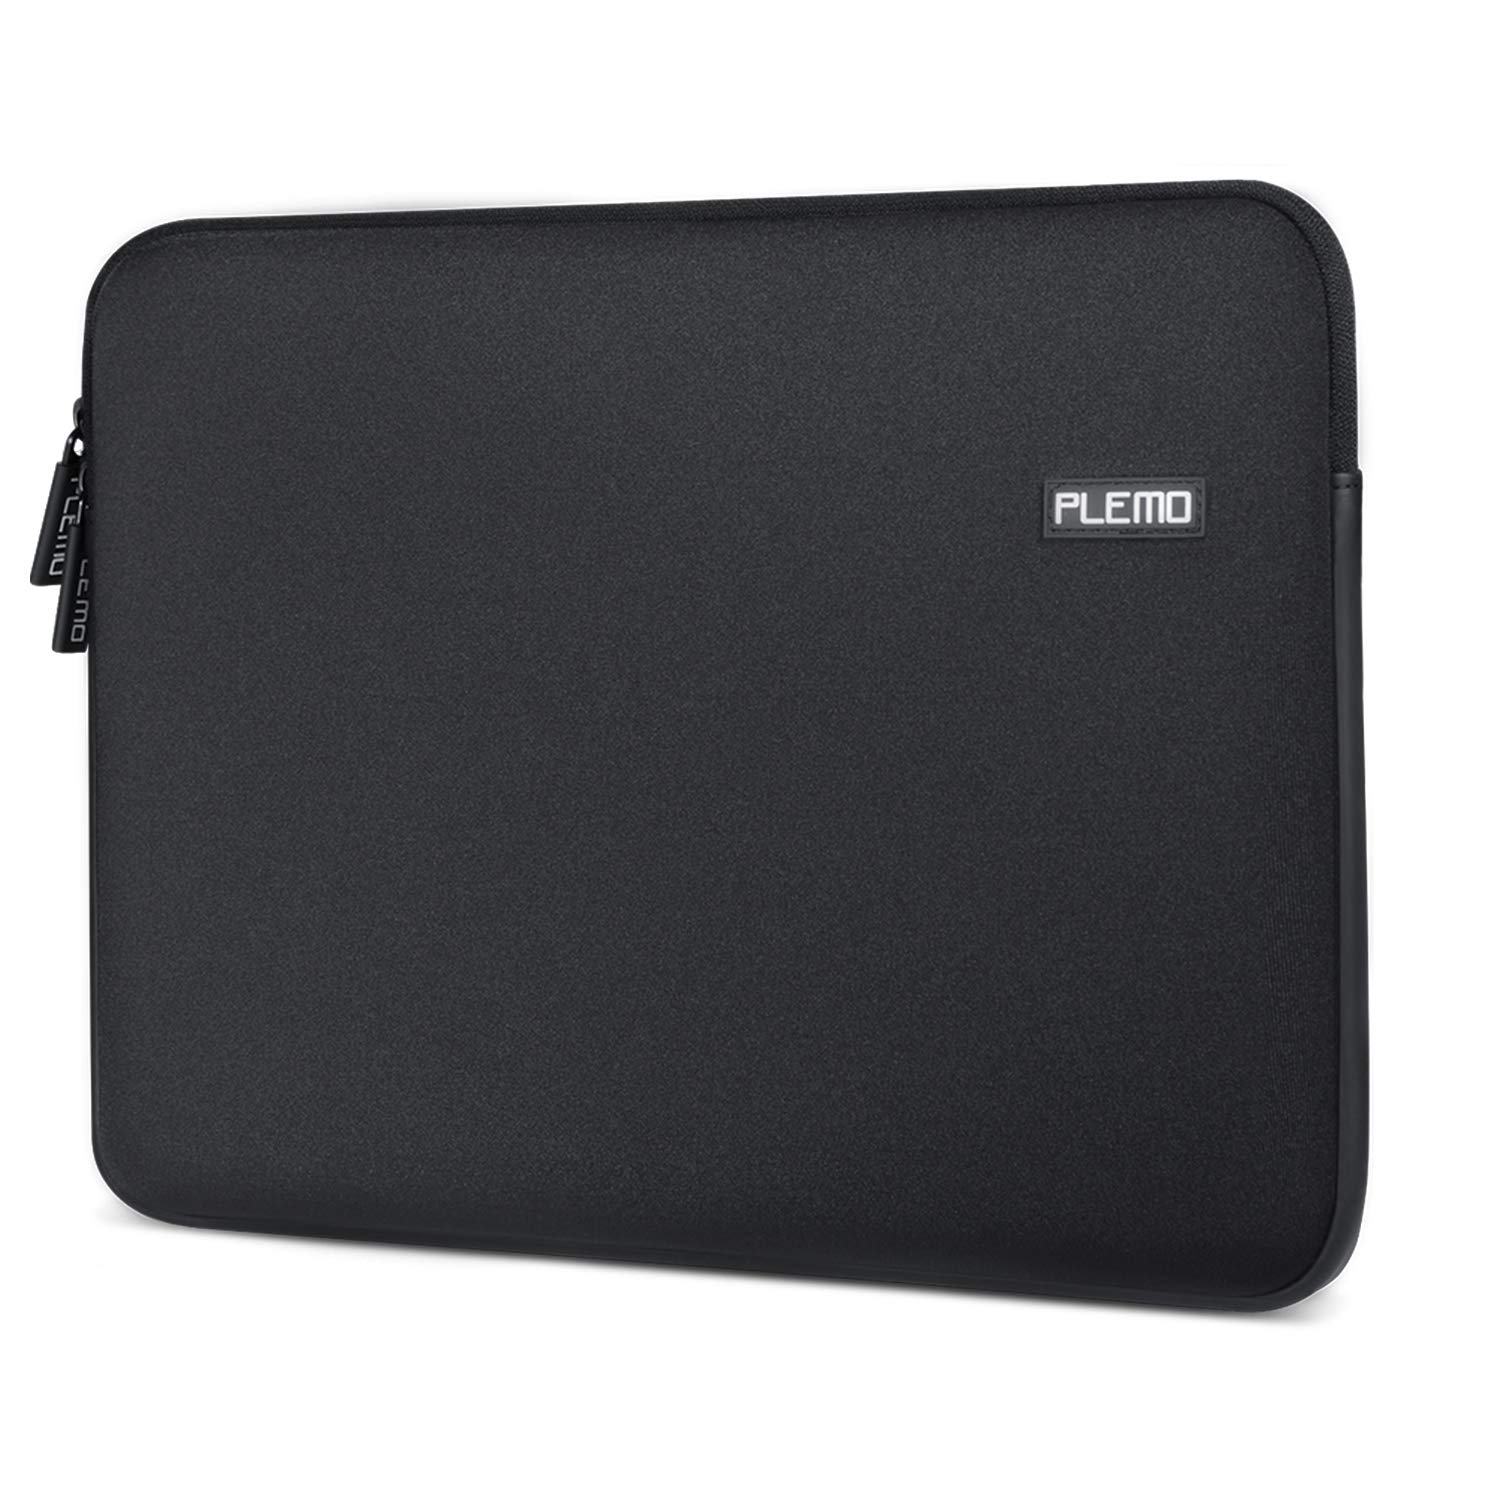 07648b3eeac1 Laptop Sleeve, PLEMO Water-Resistant Soft Neoprene 13 - 13.3 Inches Laptop  Case Sleeve Cover Bag for 12.9 iPad Pro / 13.3 Inches MacBook Air / MacBook  ...